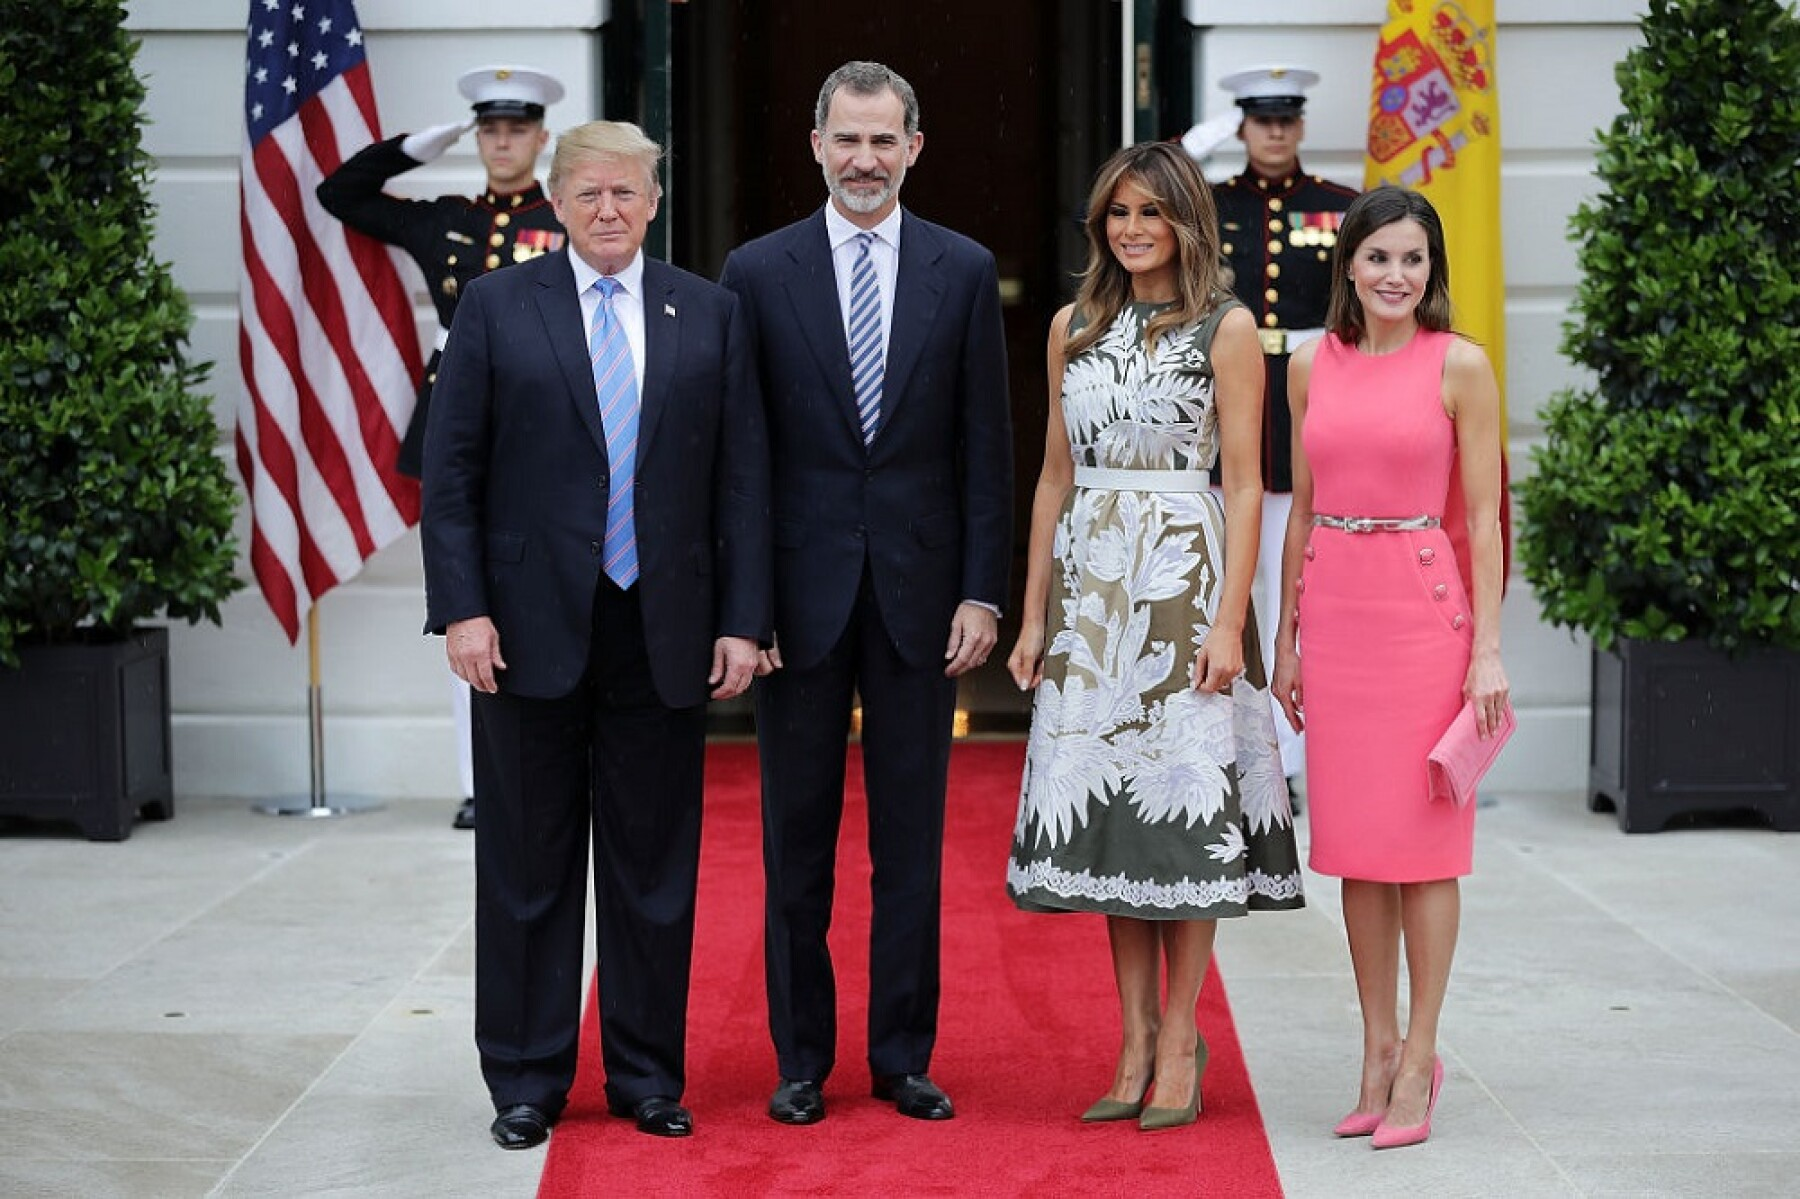 ¿Cuánto mide Barron Trump? - Altura - Real height - Página 3 ?url=https%3A%2F%2Fcdn-3.expansion.mx%2F83%2F76%2F39d841244ee89e98eded363f16fa%2Fgettyimages-978815490